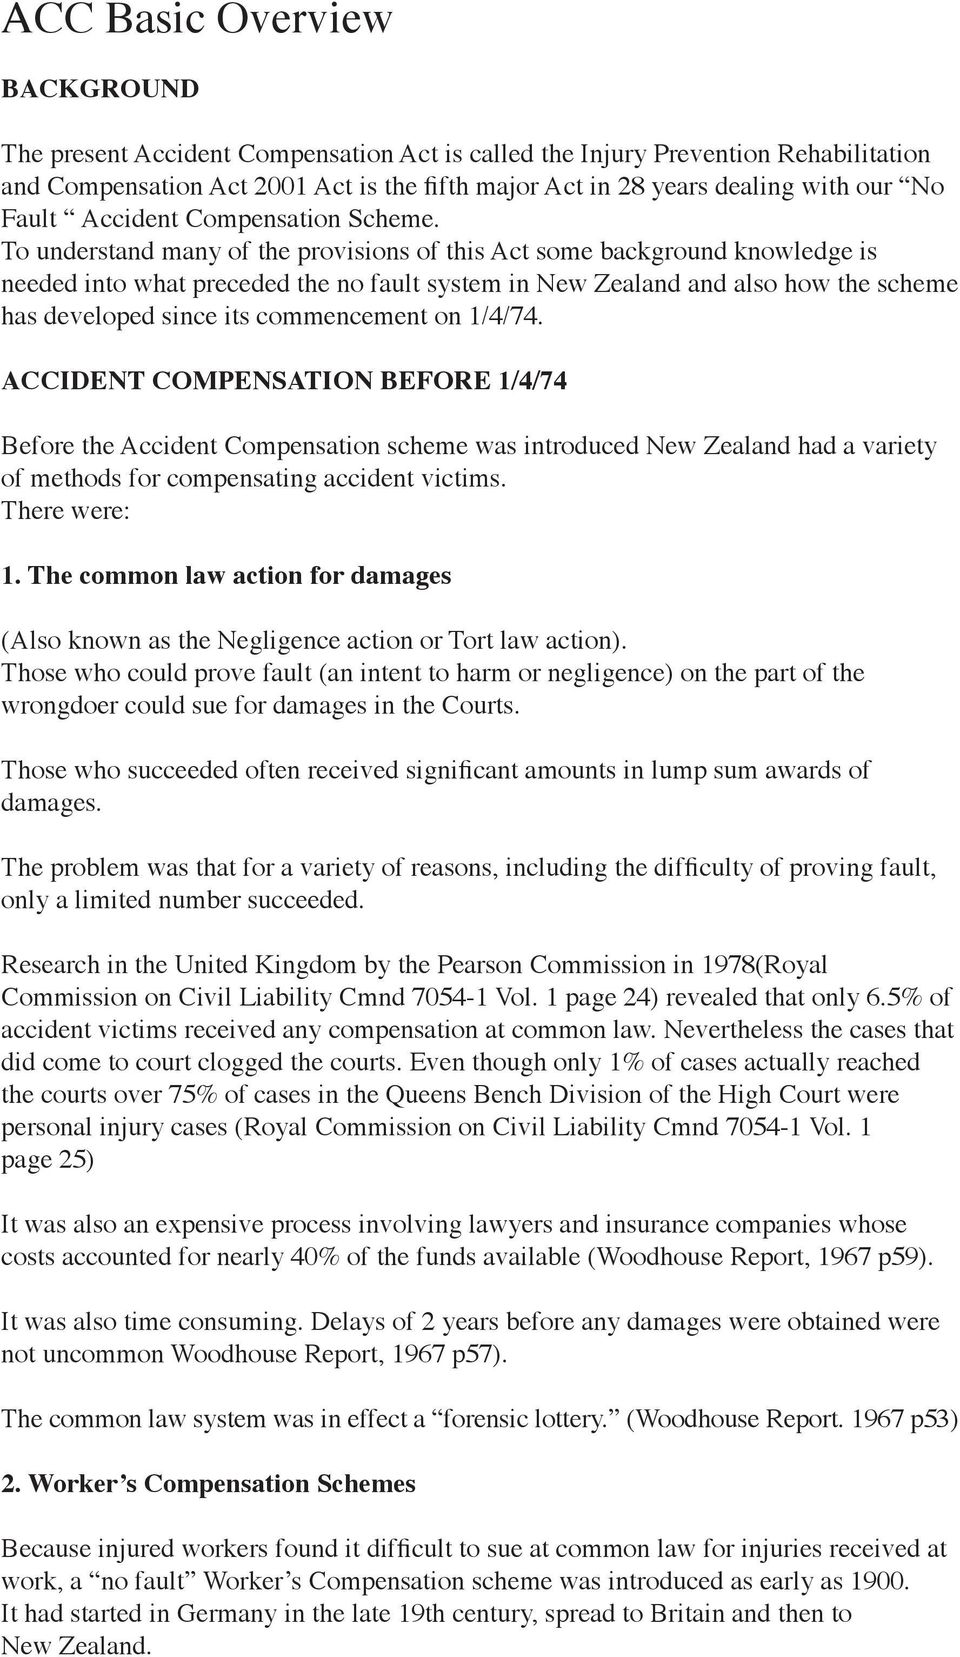 To understand many of the provisions of this Act some background knowledge is needed into what preceded the no fault system in New Zealand and also how the scheme has developed since its commencement